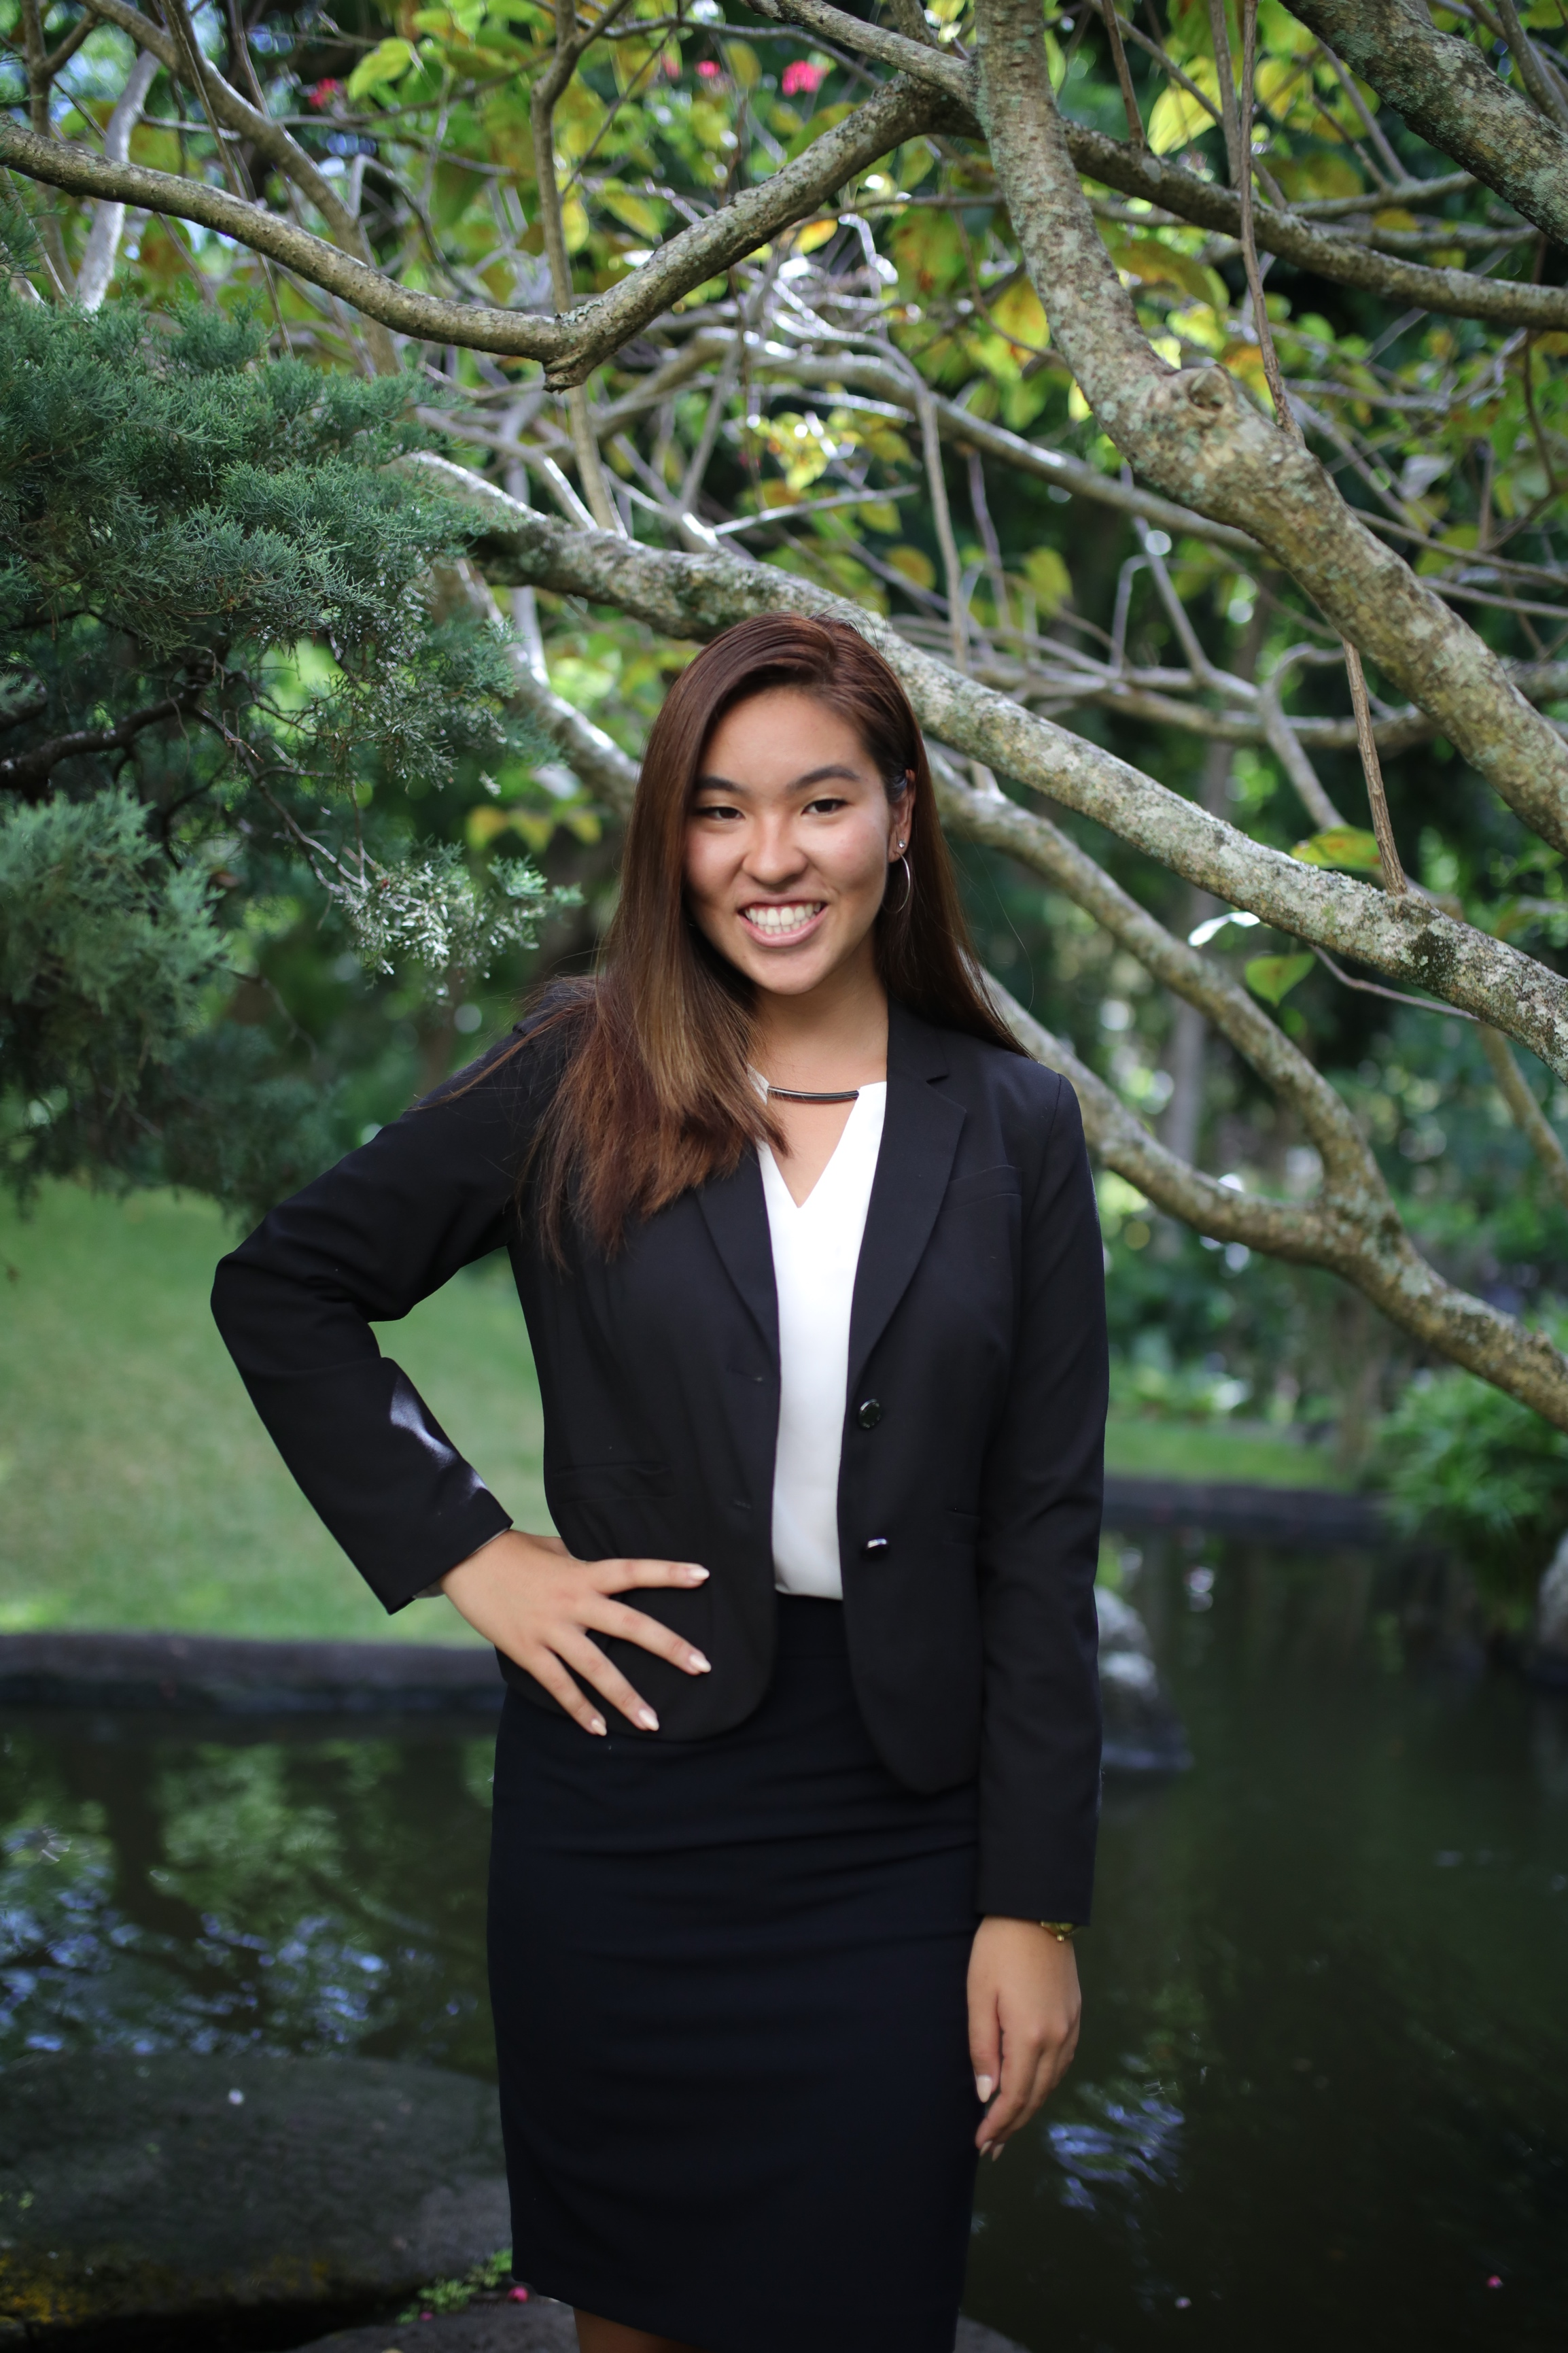 Taylor Pu'uohau - Officer Position of Interest: PresidentMy name is Taylor Pu'uohau and I'm currently a junior majoring in Biology and Public Health. I graduated from Kamehameha in 2016 and grew up in Palolo. I love to read, hang out with friends, go to the gym, and watch YouTube or Netflix in my free time! Upon graduating I would like to attend medical school and get my MPH. My passion is in helping underserved and disadvantaged communities so I would love to give back to those living in those populations in Hawaii in the future.Why are you interested in this position?PMA has always been an important aspect of my college career. I've gotten to expand my network of health professionals and it's where I met a lot of peers who I now consider life long friends. PMA has given me a lot of opportunities and I want to be able to give back to the club by serving on the board and making sure the club still thrives! I think that I could best give back by being President because of how passionate I am to make sure PMA does well. I also think that I have the dedication and accountability necessary to make sure everything is kept to the high standard that PMA upholds.If I were to be president next semester I think I would like to pursue the idea that was started this semester of making PMA a more inclusive organization. Hosting meetings between all the committee and board members can be really beneficial to the growth of PMA. With the amount of members we have, I think it would be helpful to get feedback and input from others to see what we can do better to help make being a member of PMA one of the most valuable experiences of our college lives.